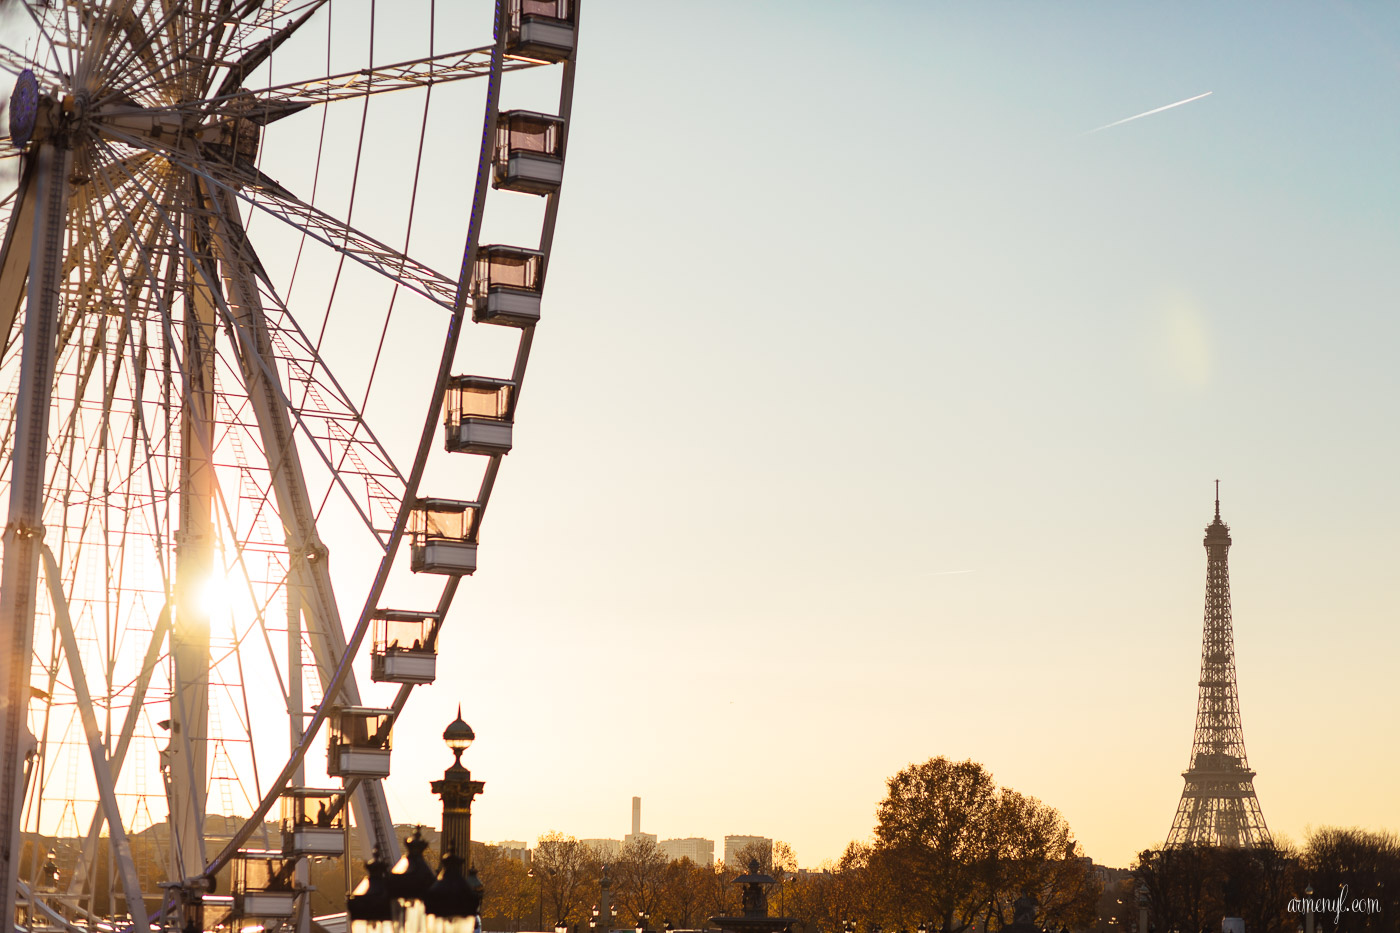 Late evenings in Magical Paris photo by Armenyl.com